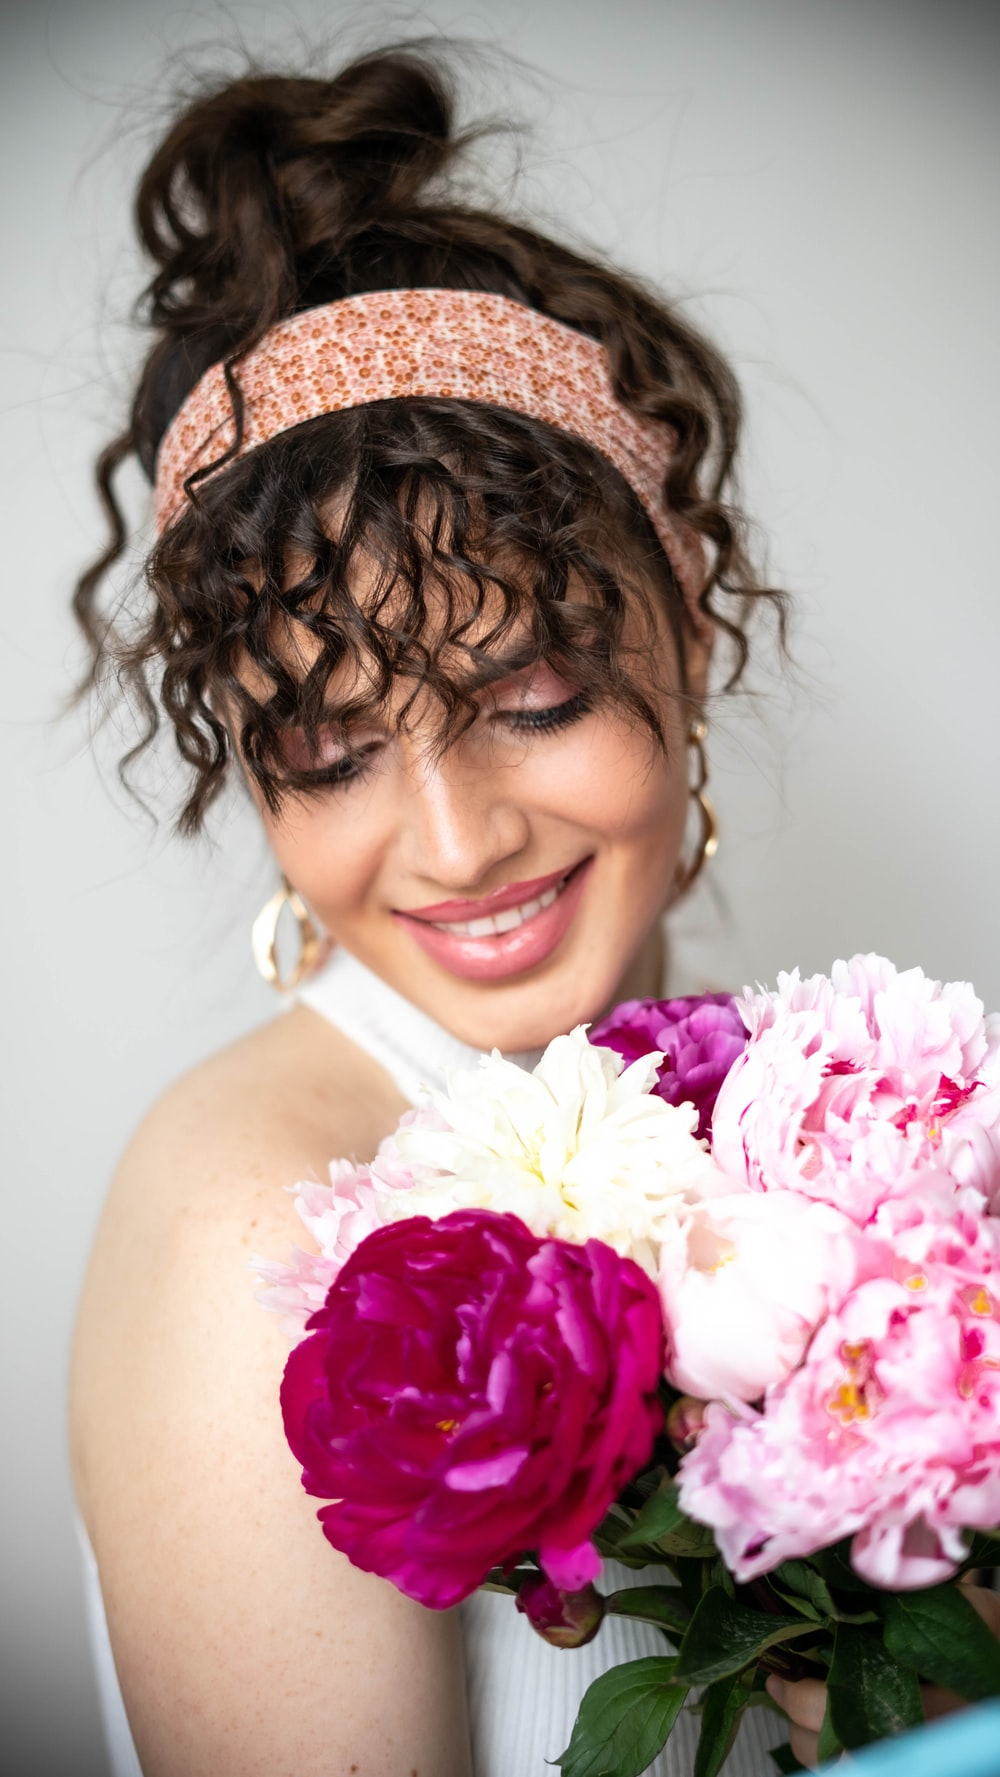 woman in pink floral headdress